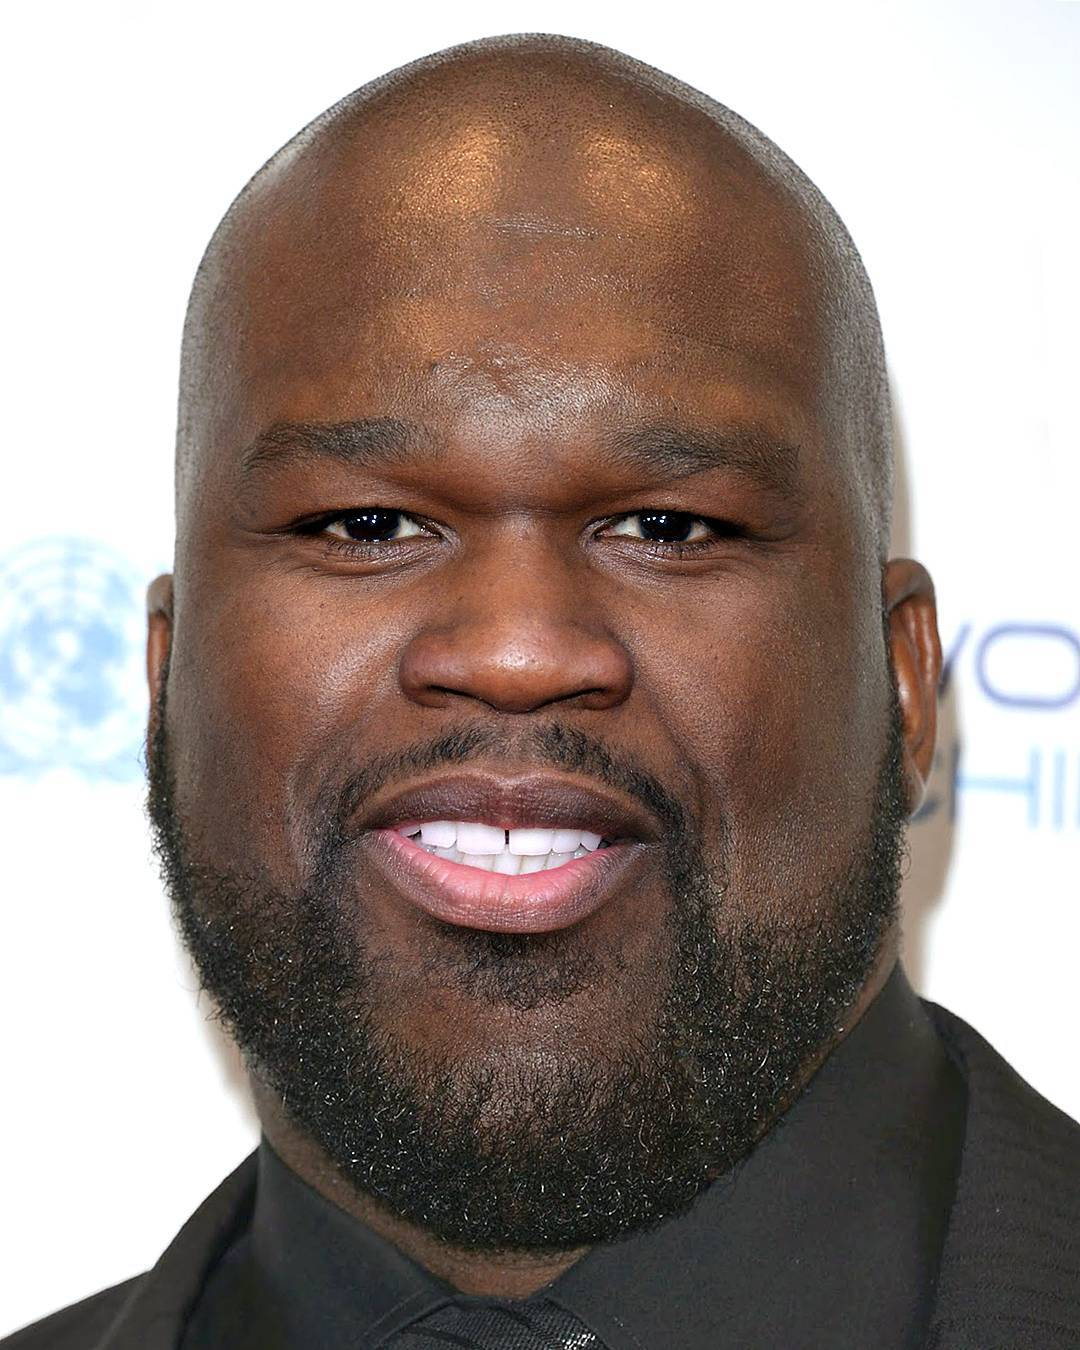 Photoshop Guru Fuses Celebrity Faces Together - Shaquille O'Neal and 50 cent